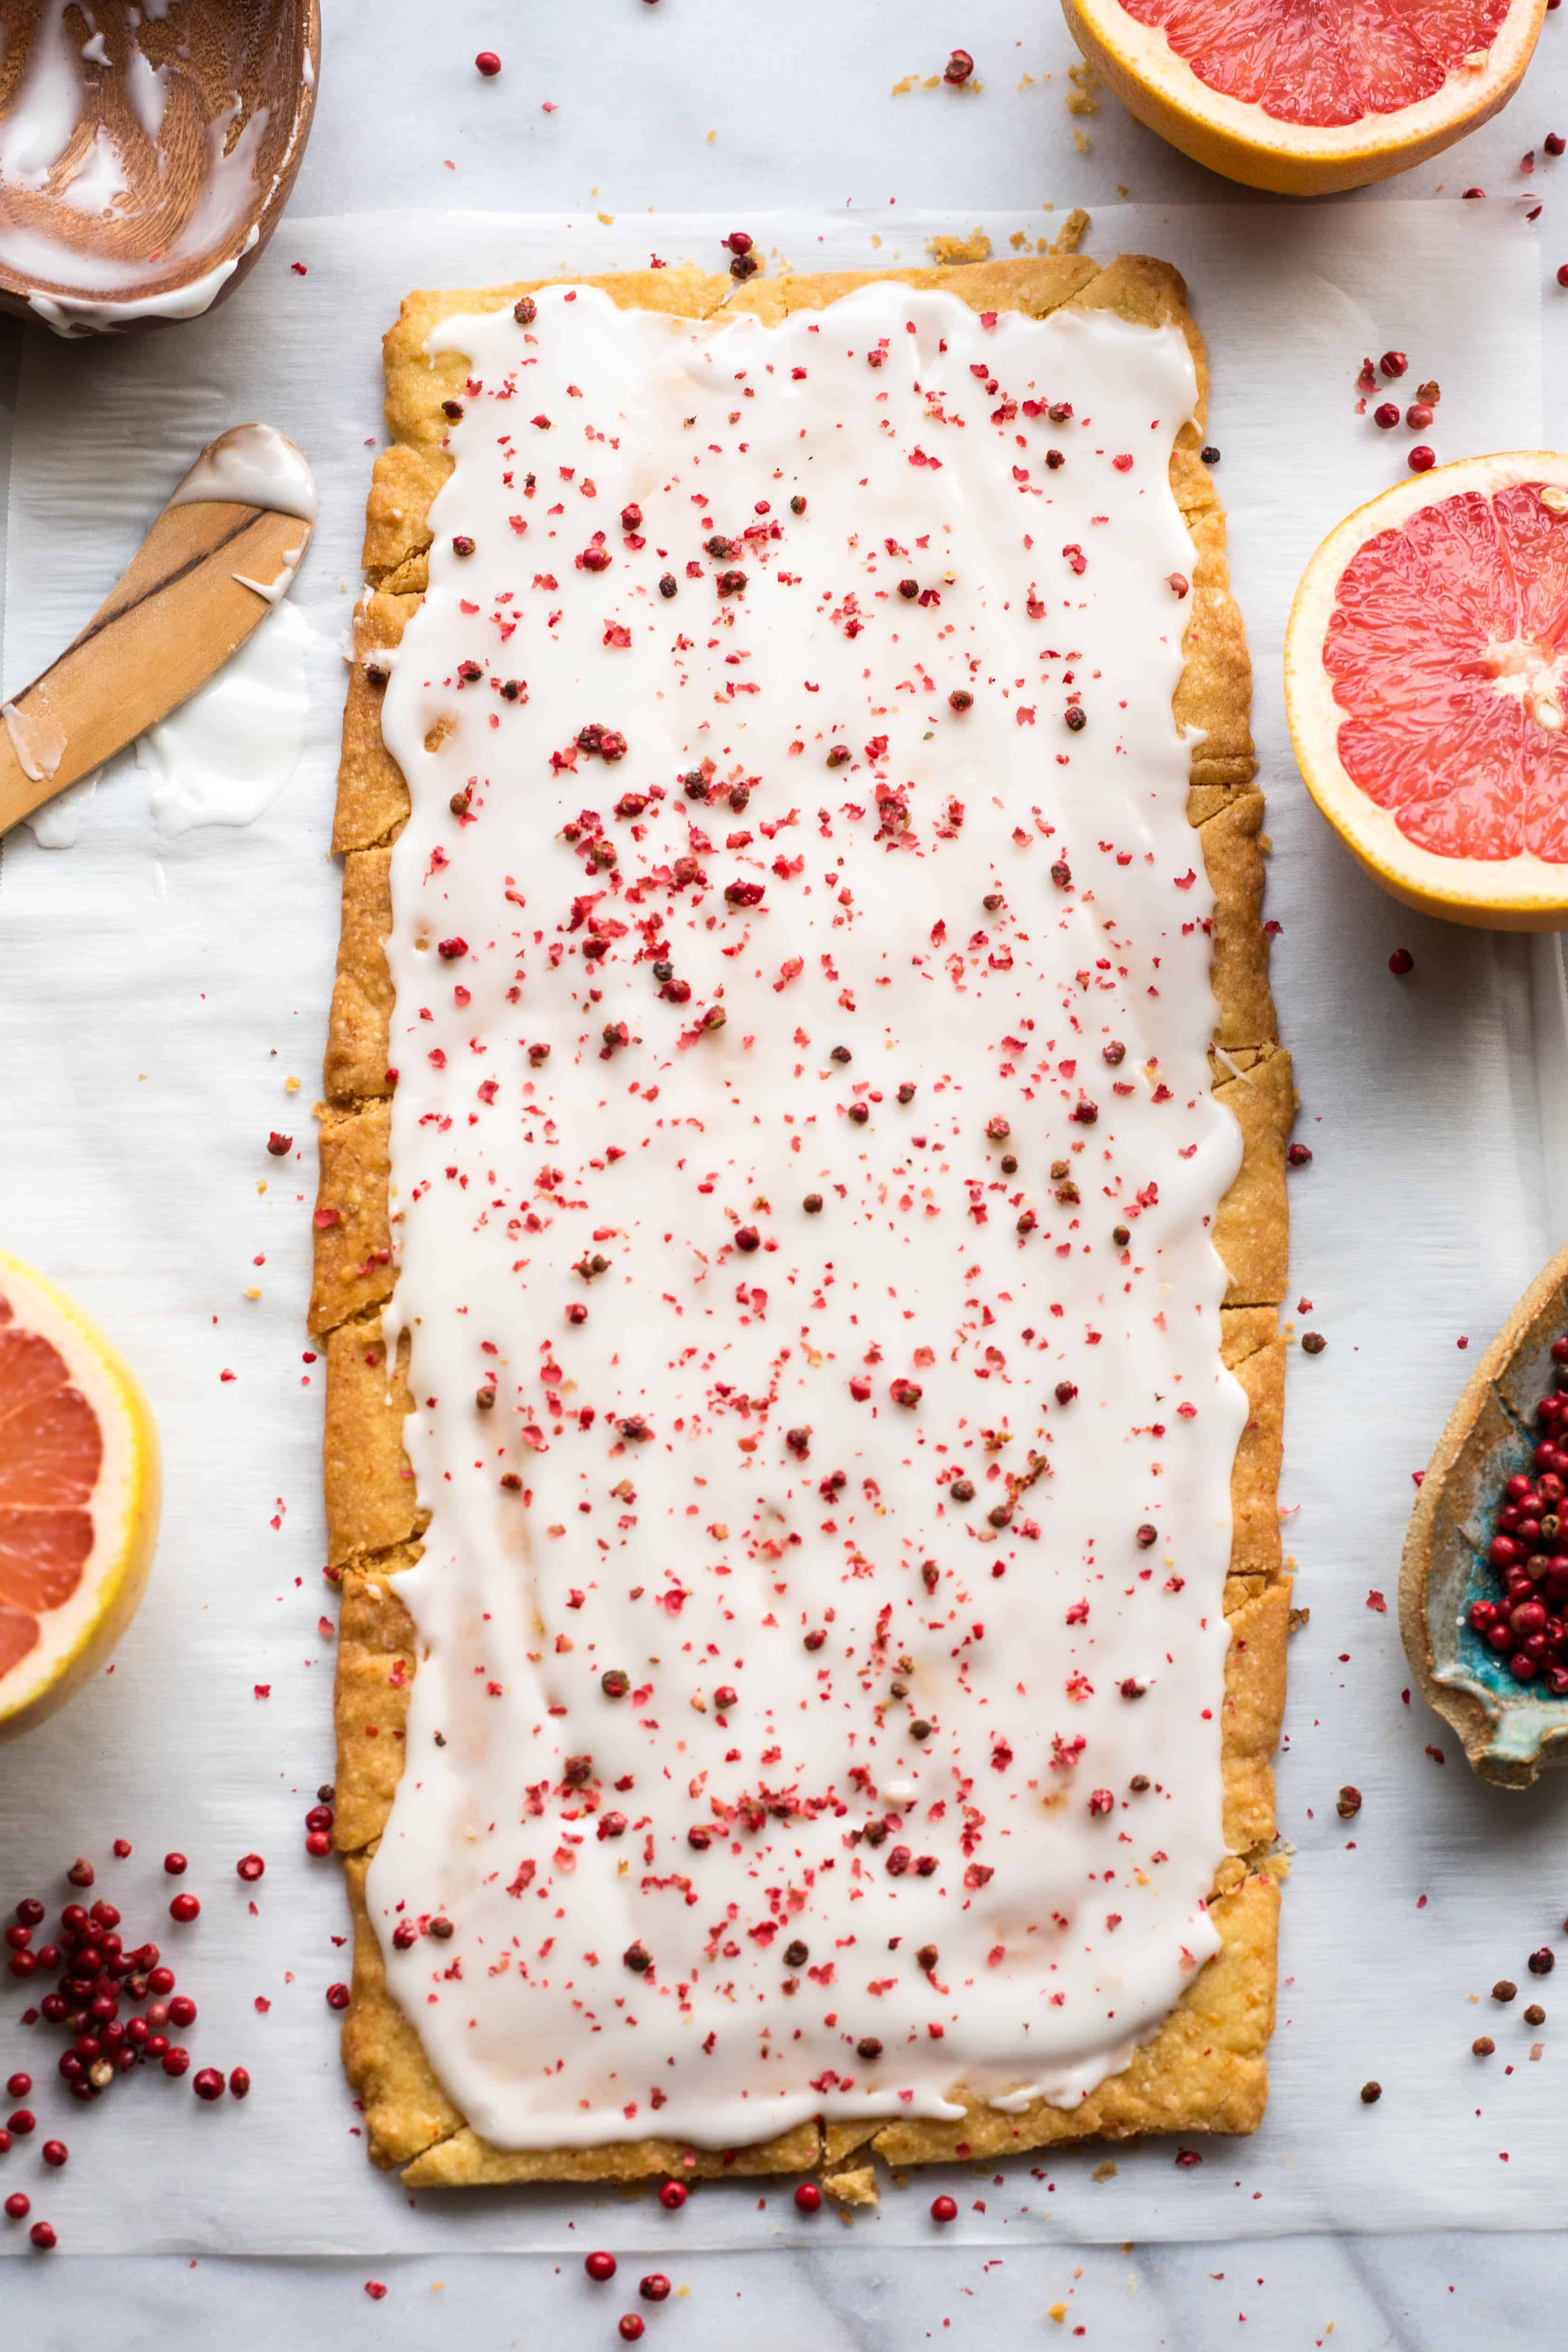 Rectangle of grapefruit shortbread that has been iced.